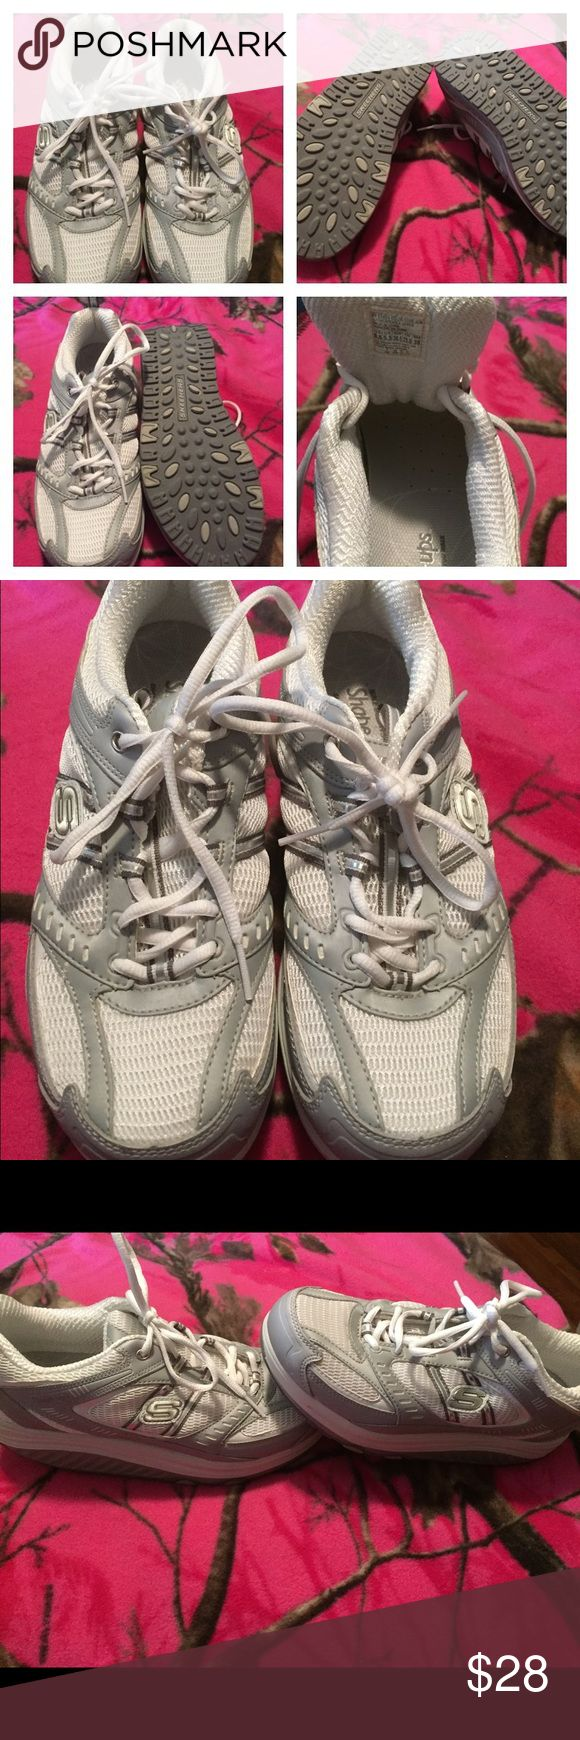 NWOT SIZE 8.5 (8 1/2) Skechers Shape ups NWOT Silver and white Skechers shape ups. These shoes were worn around the house, but did not fit me.  I do not see any flaws on them.  Women's size 8.5 (8 1/2). Skechers Shoes Athletic Shoes